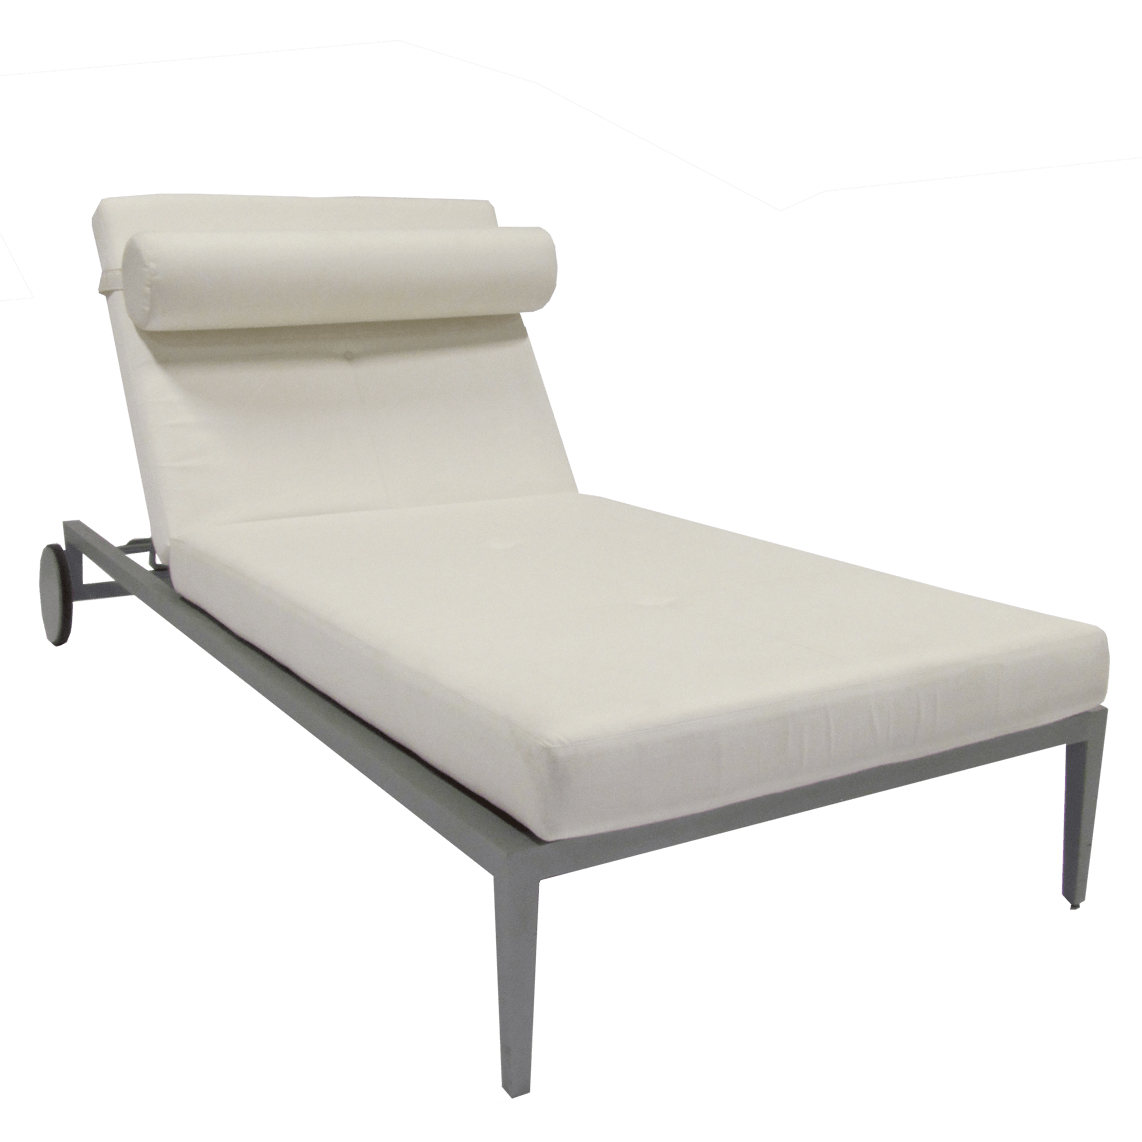 Archetype outdoor chaise lounge for Chaise lounge clearance